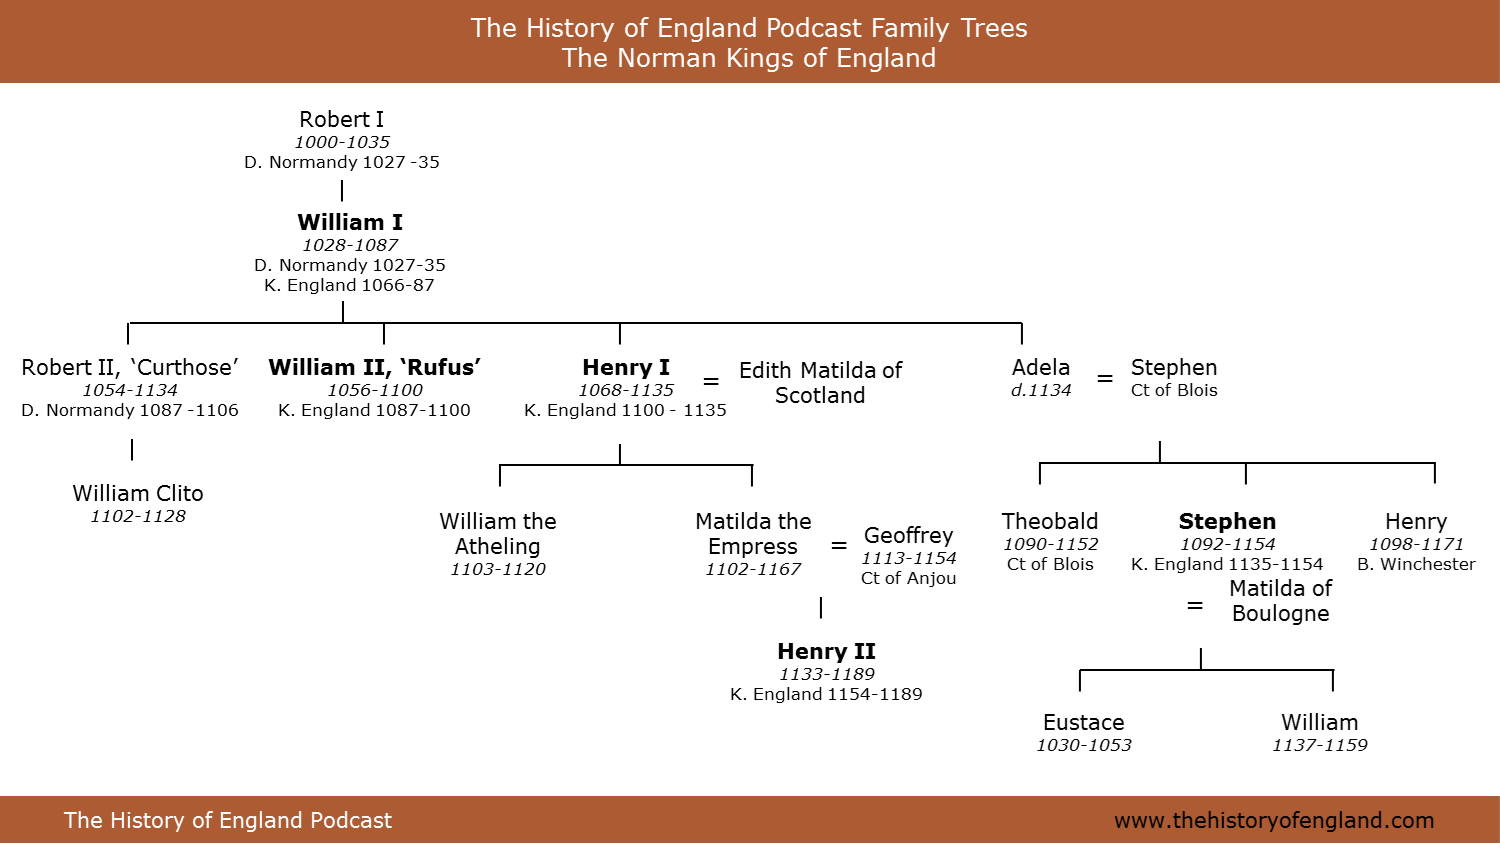 family trees normandy and the angevins the history family tree of the norman kings of england